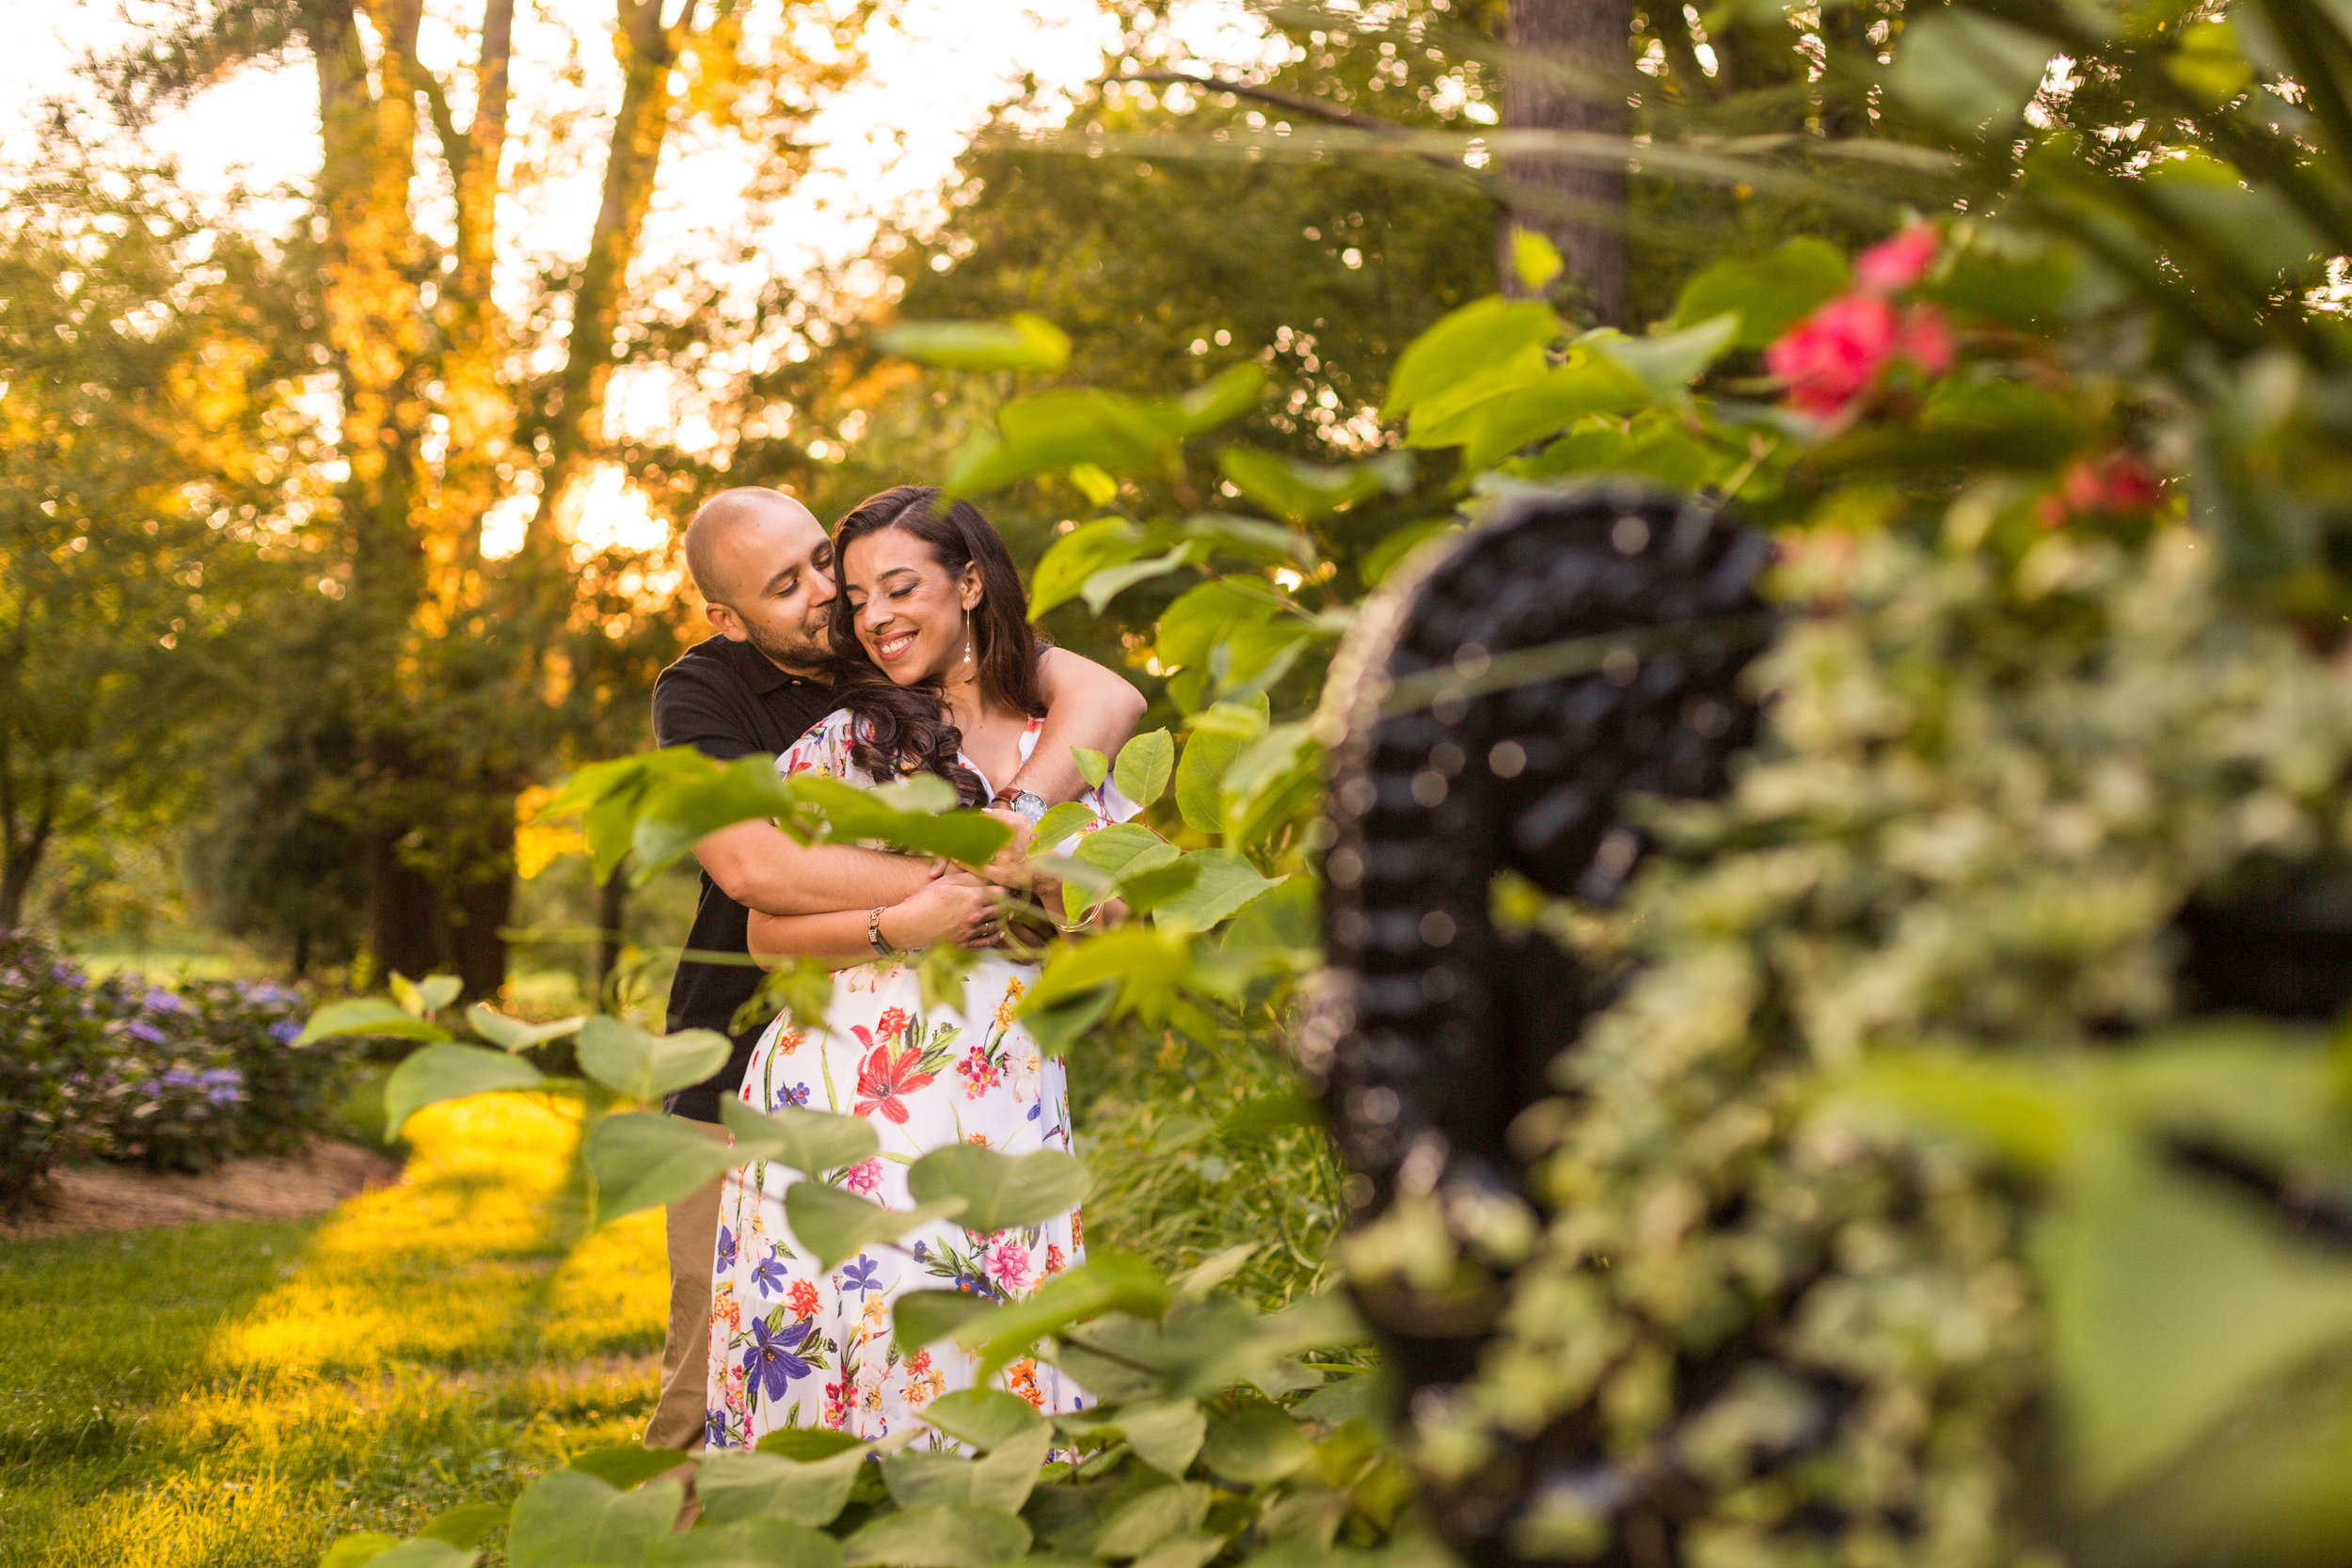 Engaged couple Jairo and Alicia bathe in the glowing sunset in the gardens of Merry Sherwood.